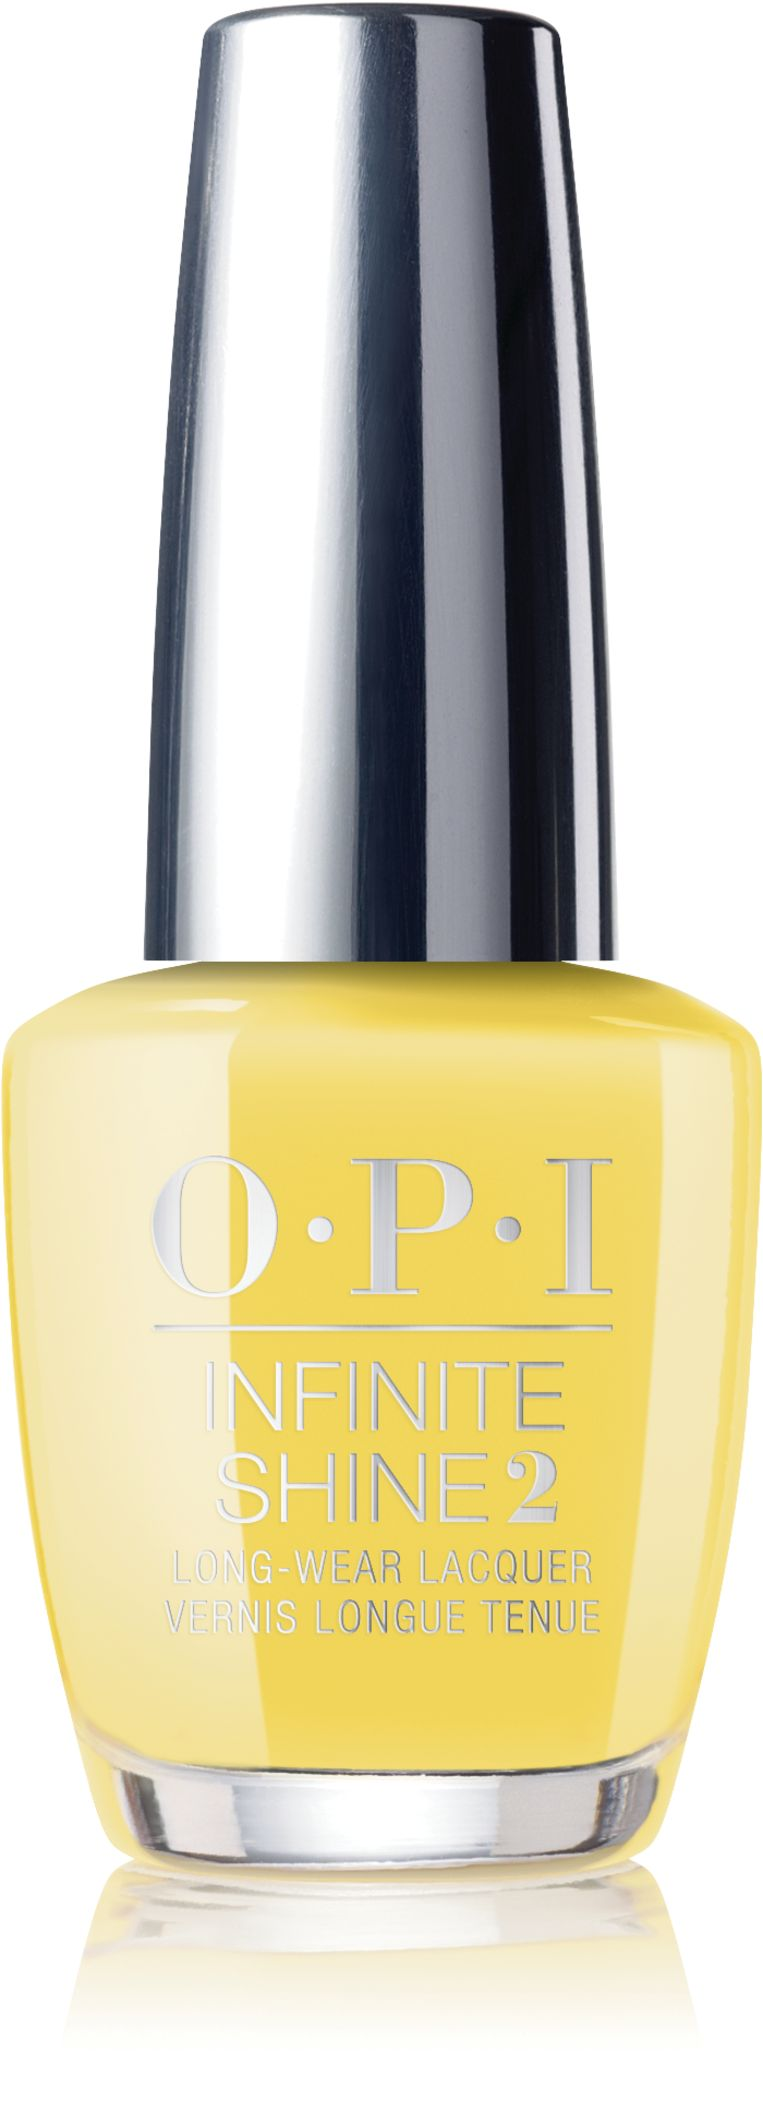 OPI Infinite Shine Lacquer 'Don't tell a sol' € 19,95 Beeld